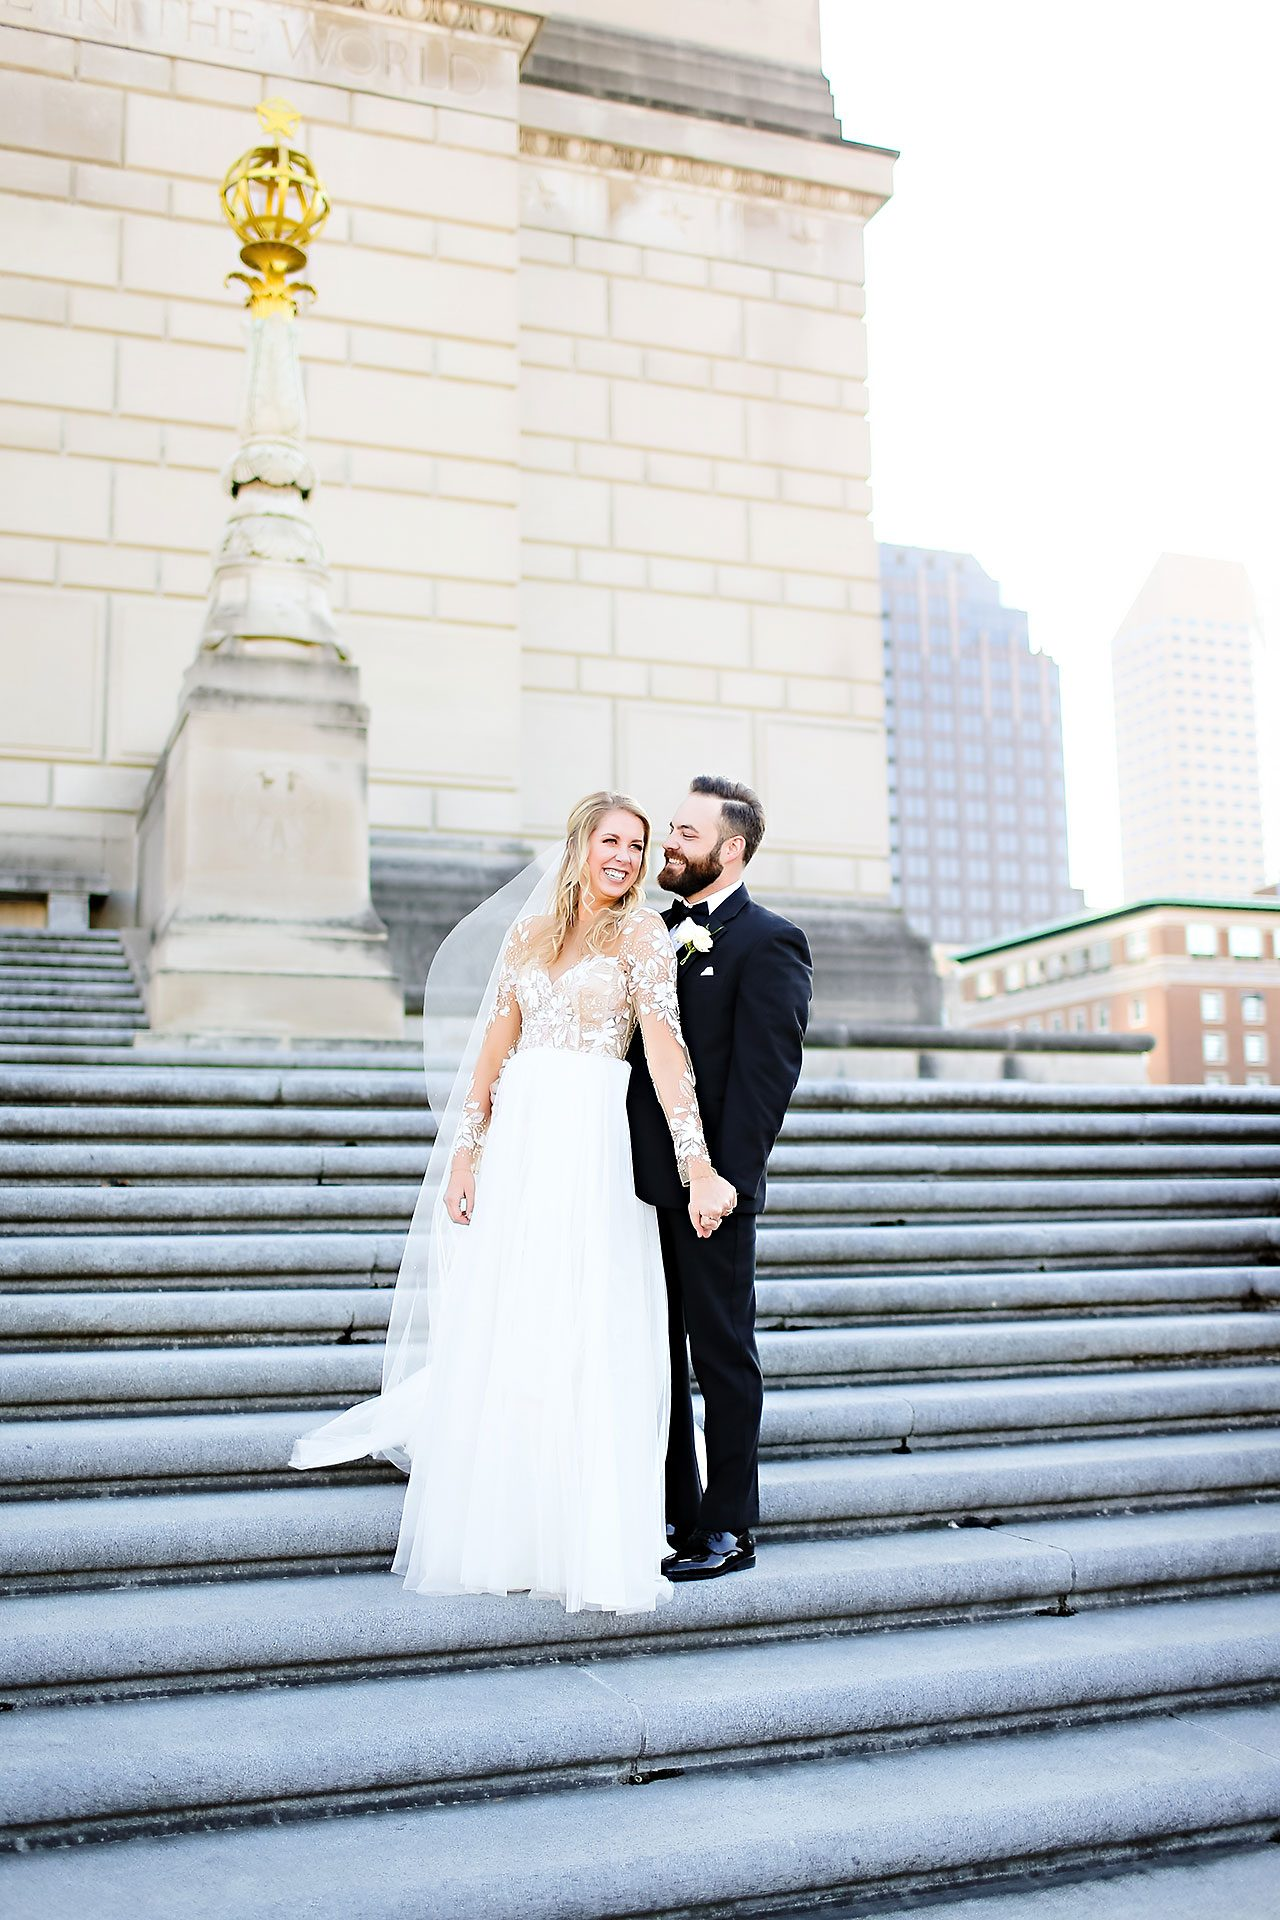 Emily Tom Scottish Rite Indianapolis Wedding 159